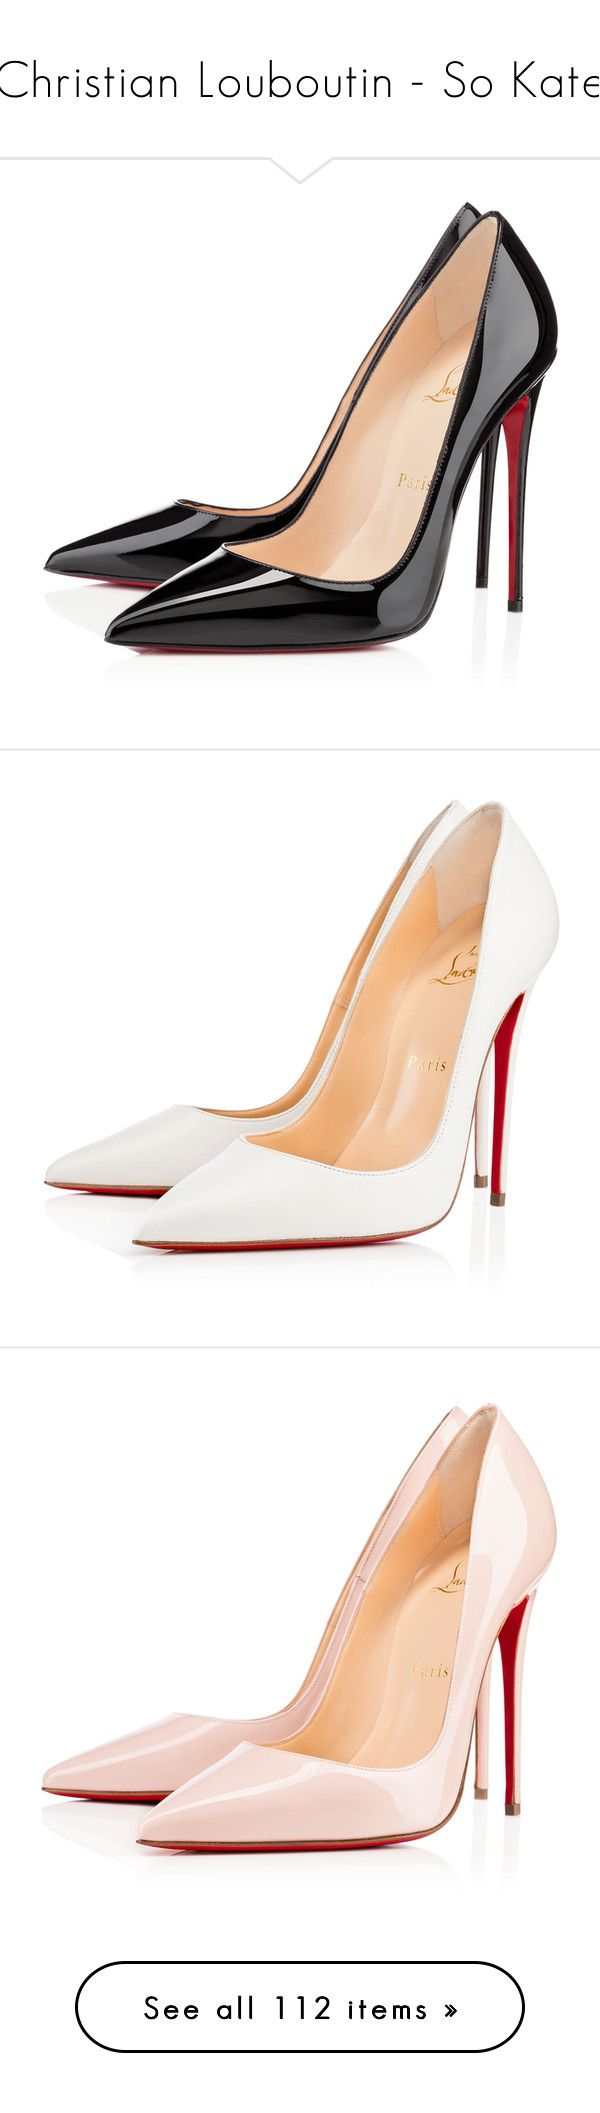 """""""Christian Louboutin - So Kate"""" by giovanna1995 ❤ liked on Polyvore featuring Pumps, christianlouboutin, sokate, shoes, pumps, heels, christian louboutin, louboutin, black and black high heel shoes"""